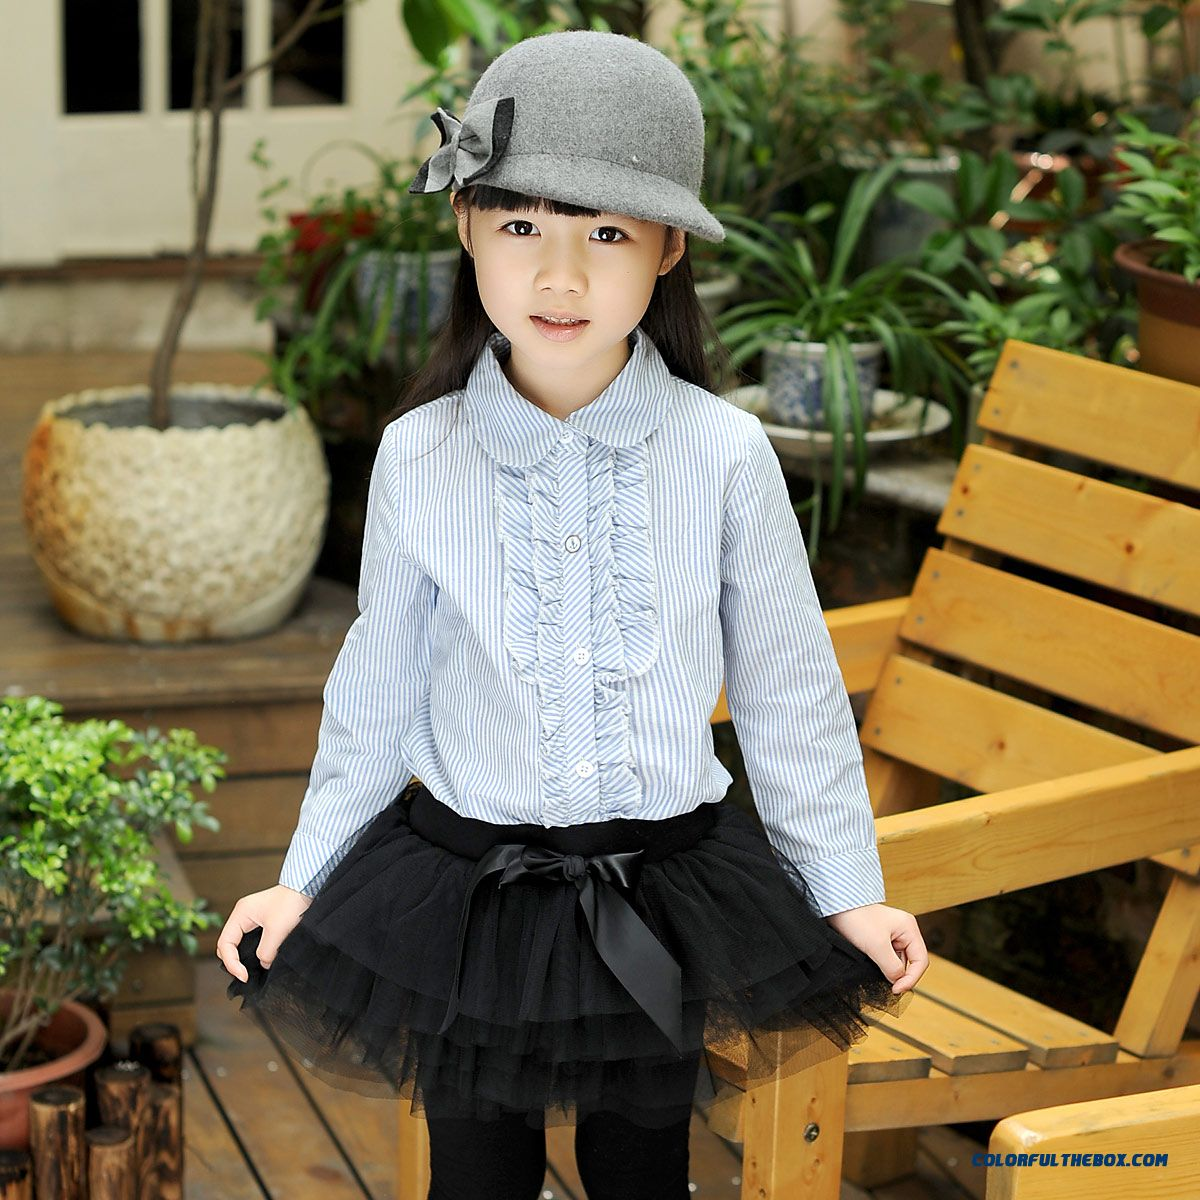 Designed Exclusively Girls Cotton Shirt Kids Long-sleeved Sky Blue Lapel College Style Striped Shirt